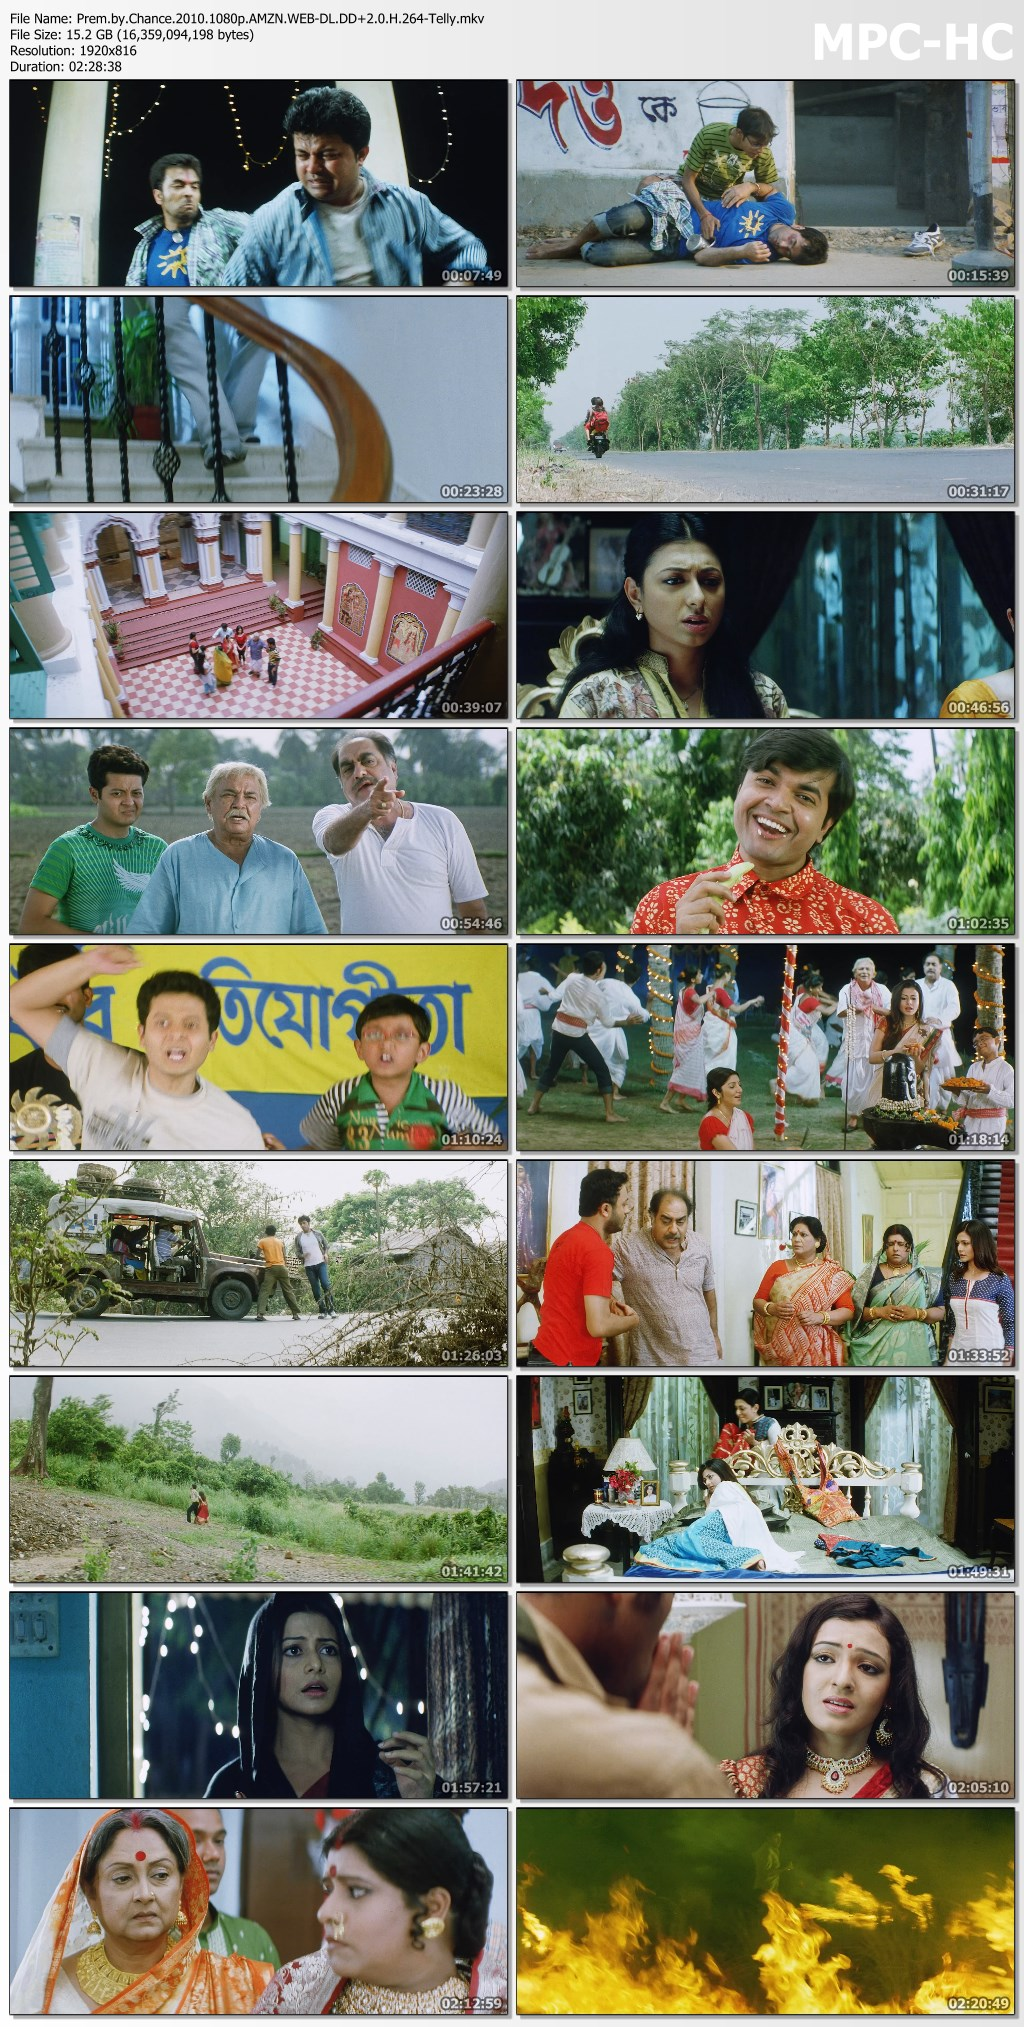 Prem.by.Chance.2010.1080p.AMZN.WEB-DL.DD2.0.H.264-Telly.mkv_thumbs79259.jpg